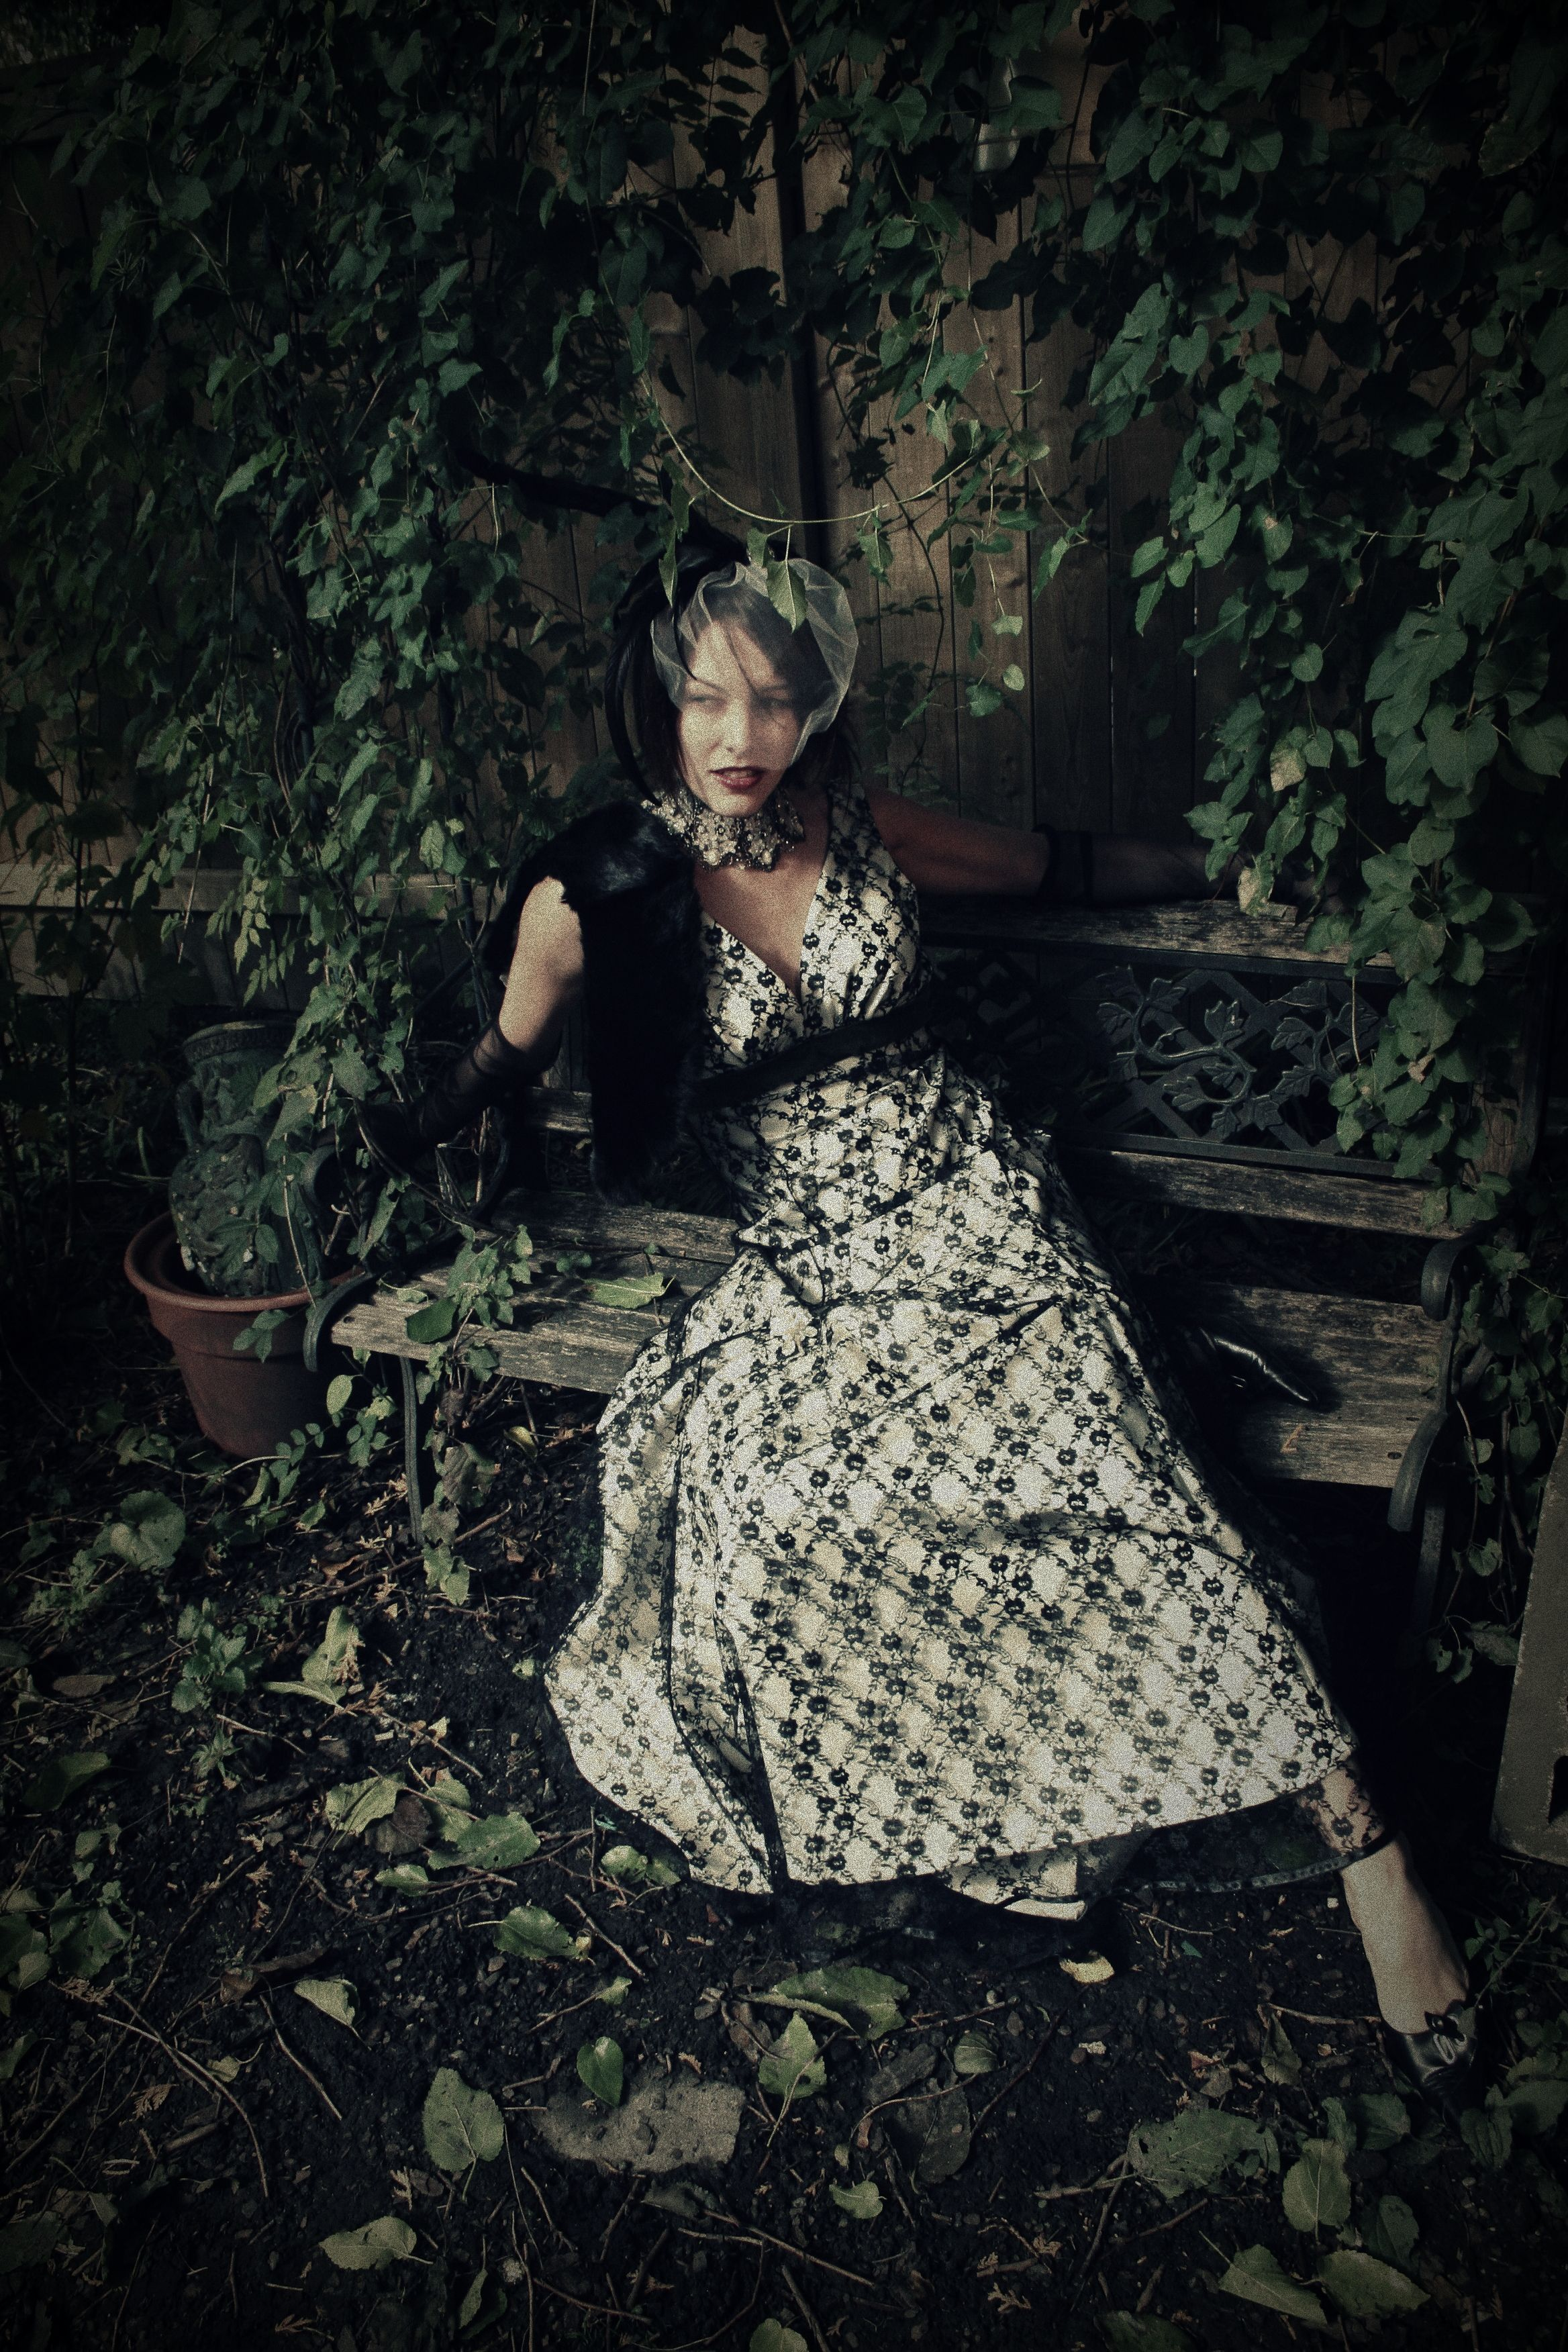 Messy Garden , crumbling grandeur, falling into decay, Jeanie Schlegel-Merrick necklace photography by gina-rae horvath